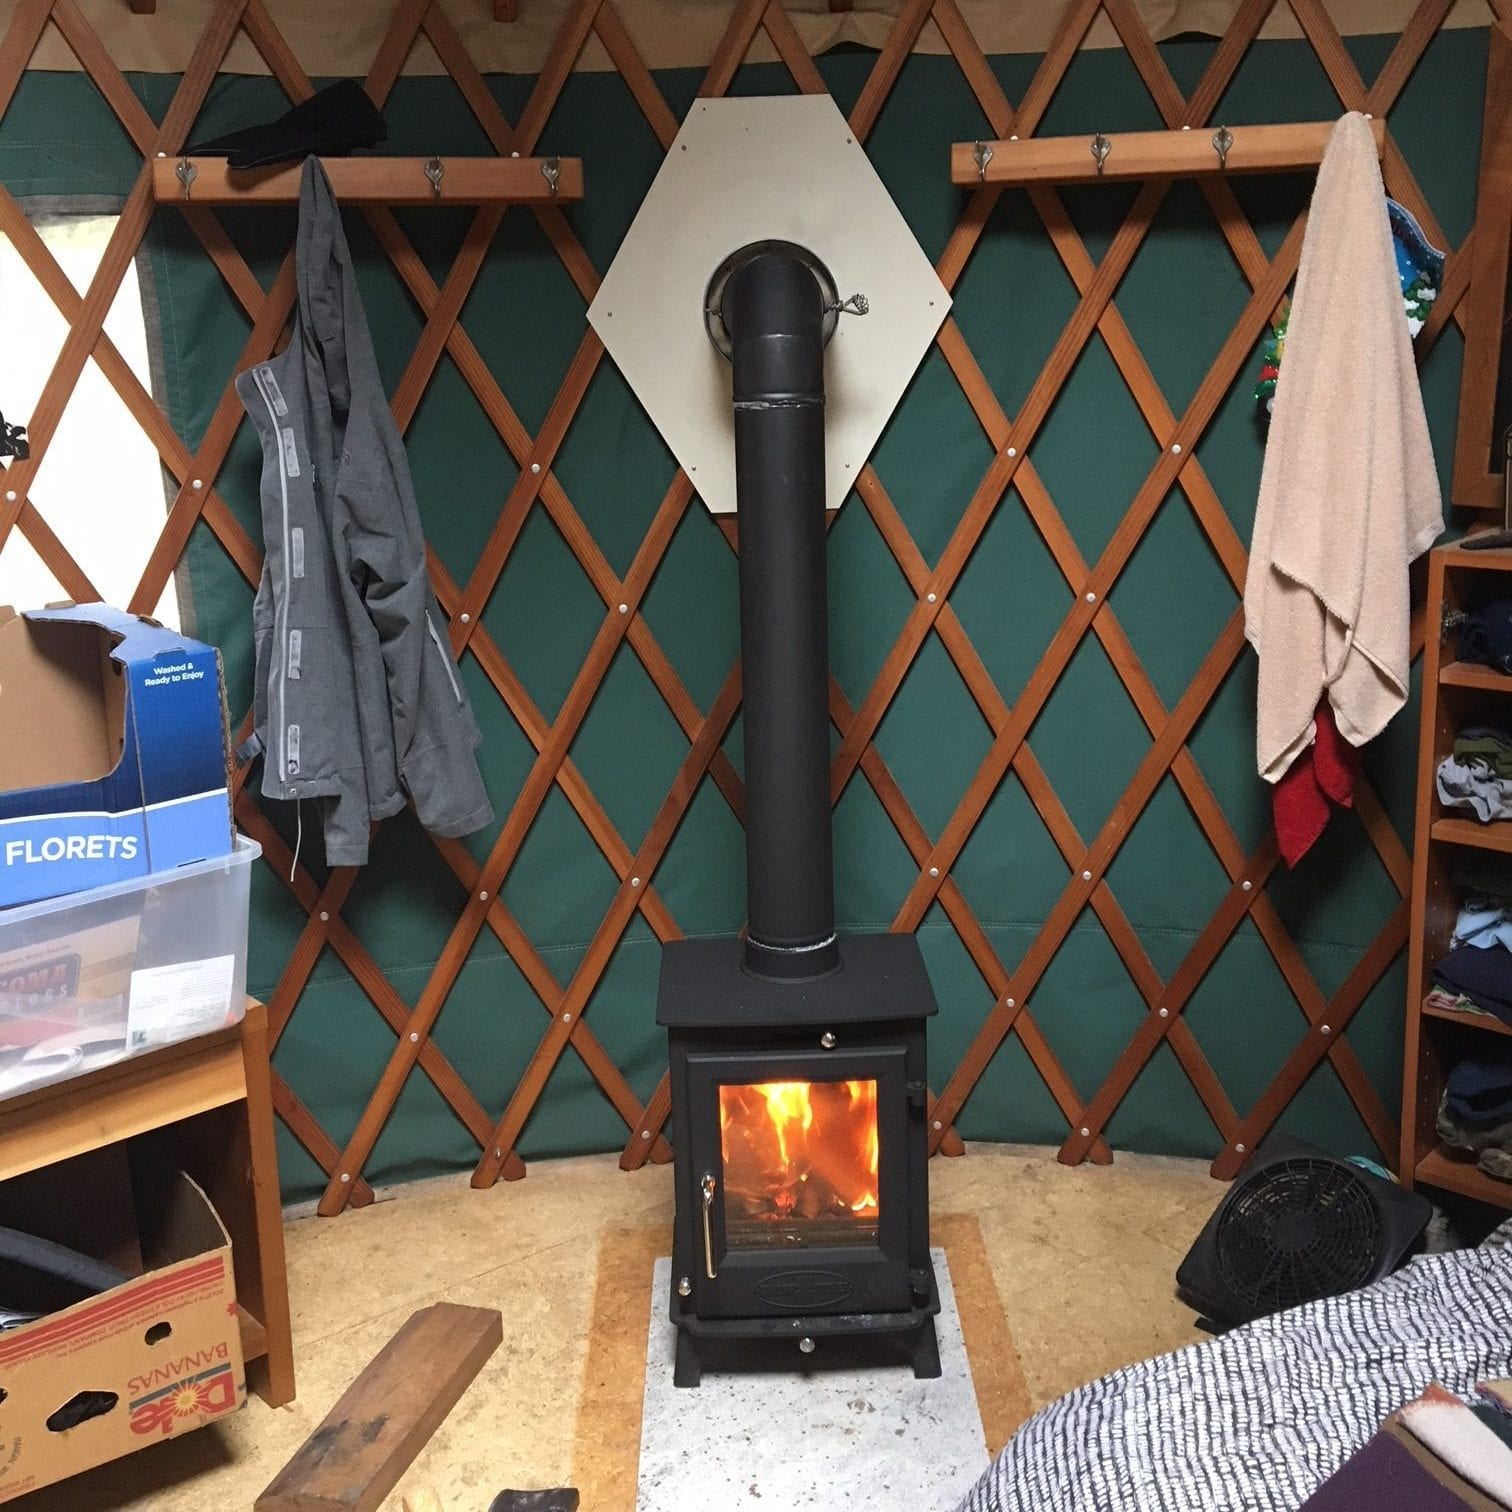 Dwarf 5kW Wood Stove in Yurt Wall Exit